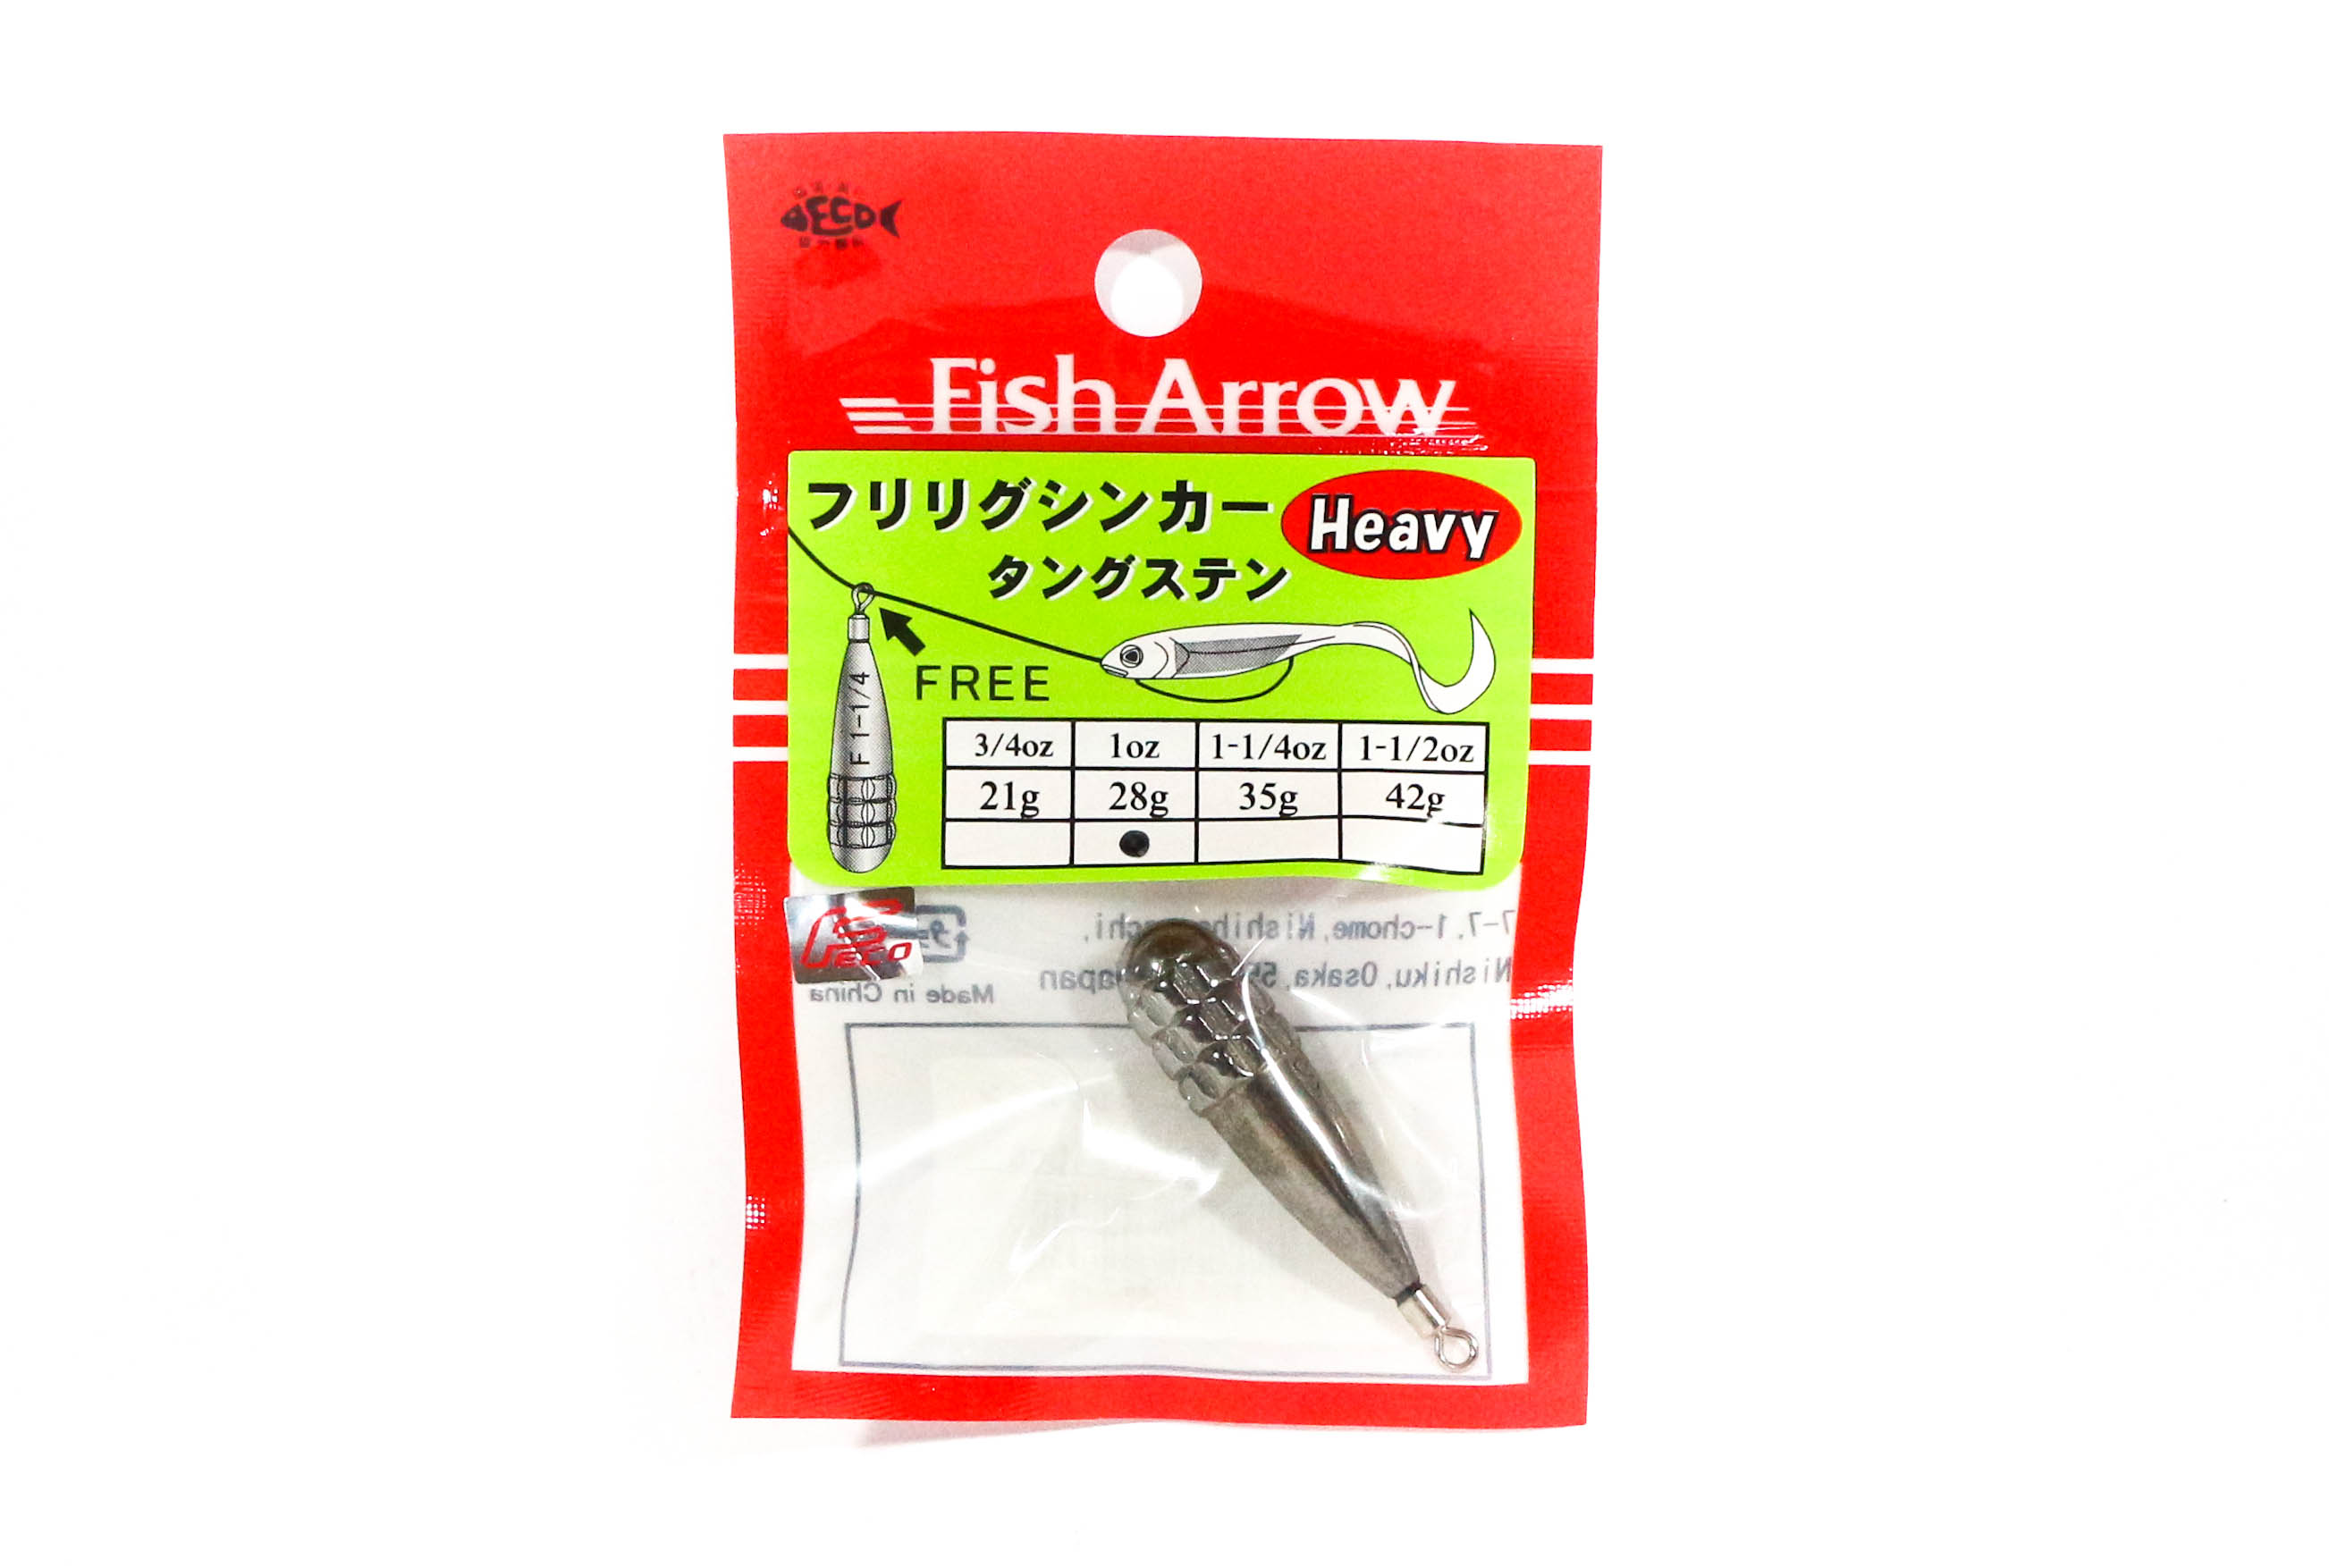 Fish Arrow Free Rig Tungster Sinker 1 oz 1 piece per pack (2701)